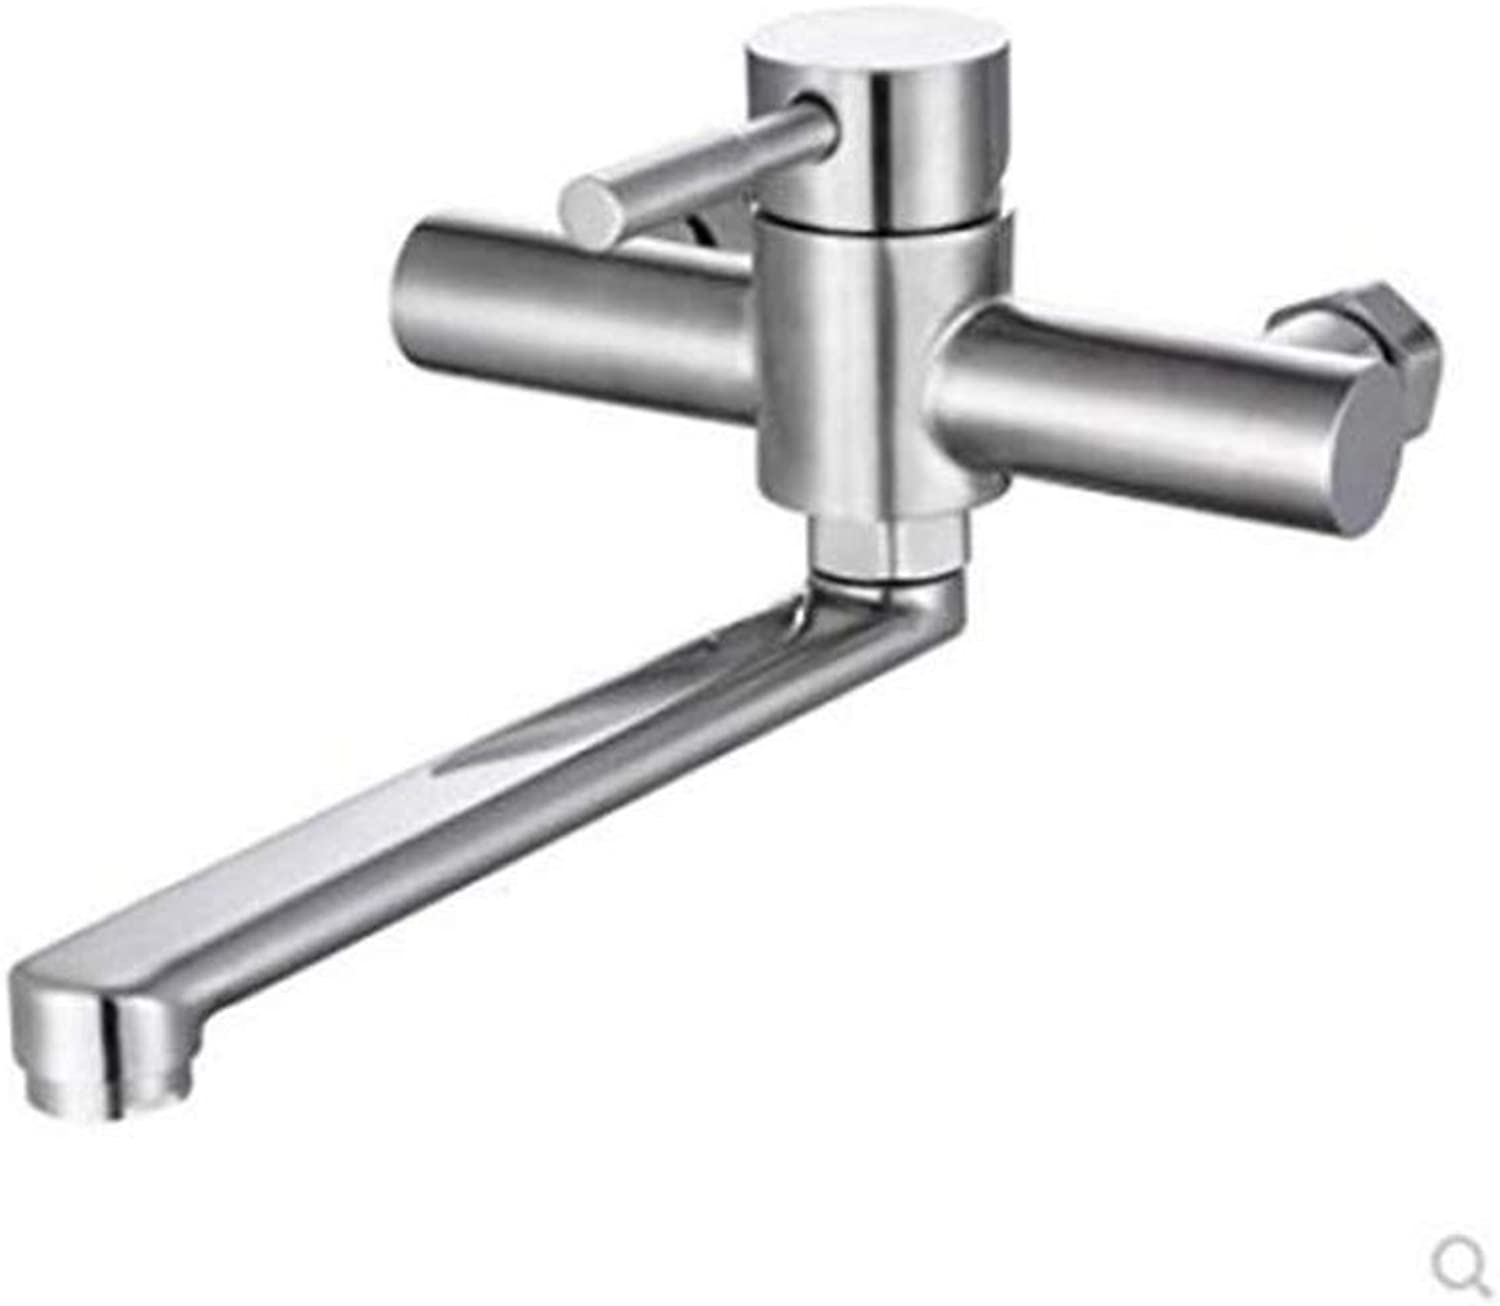 Bathroom Sink Basin Lever Mixer Tap Hot and Cold Water Kitchen Sink Faucet